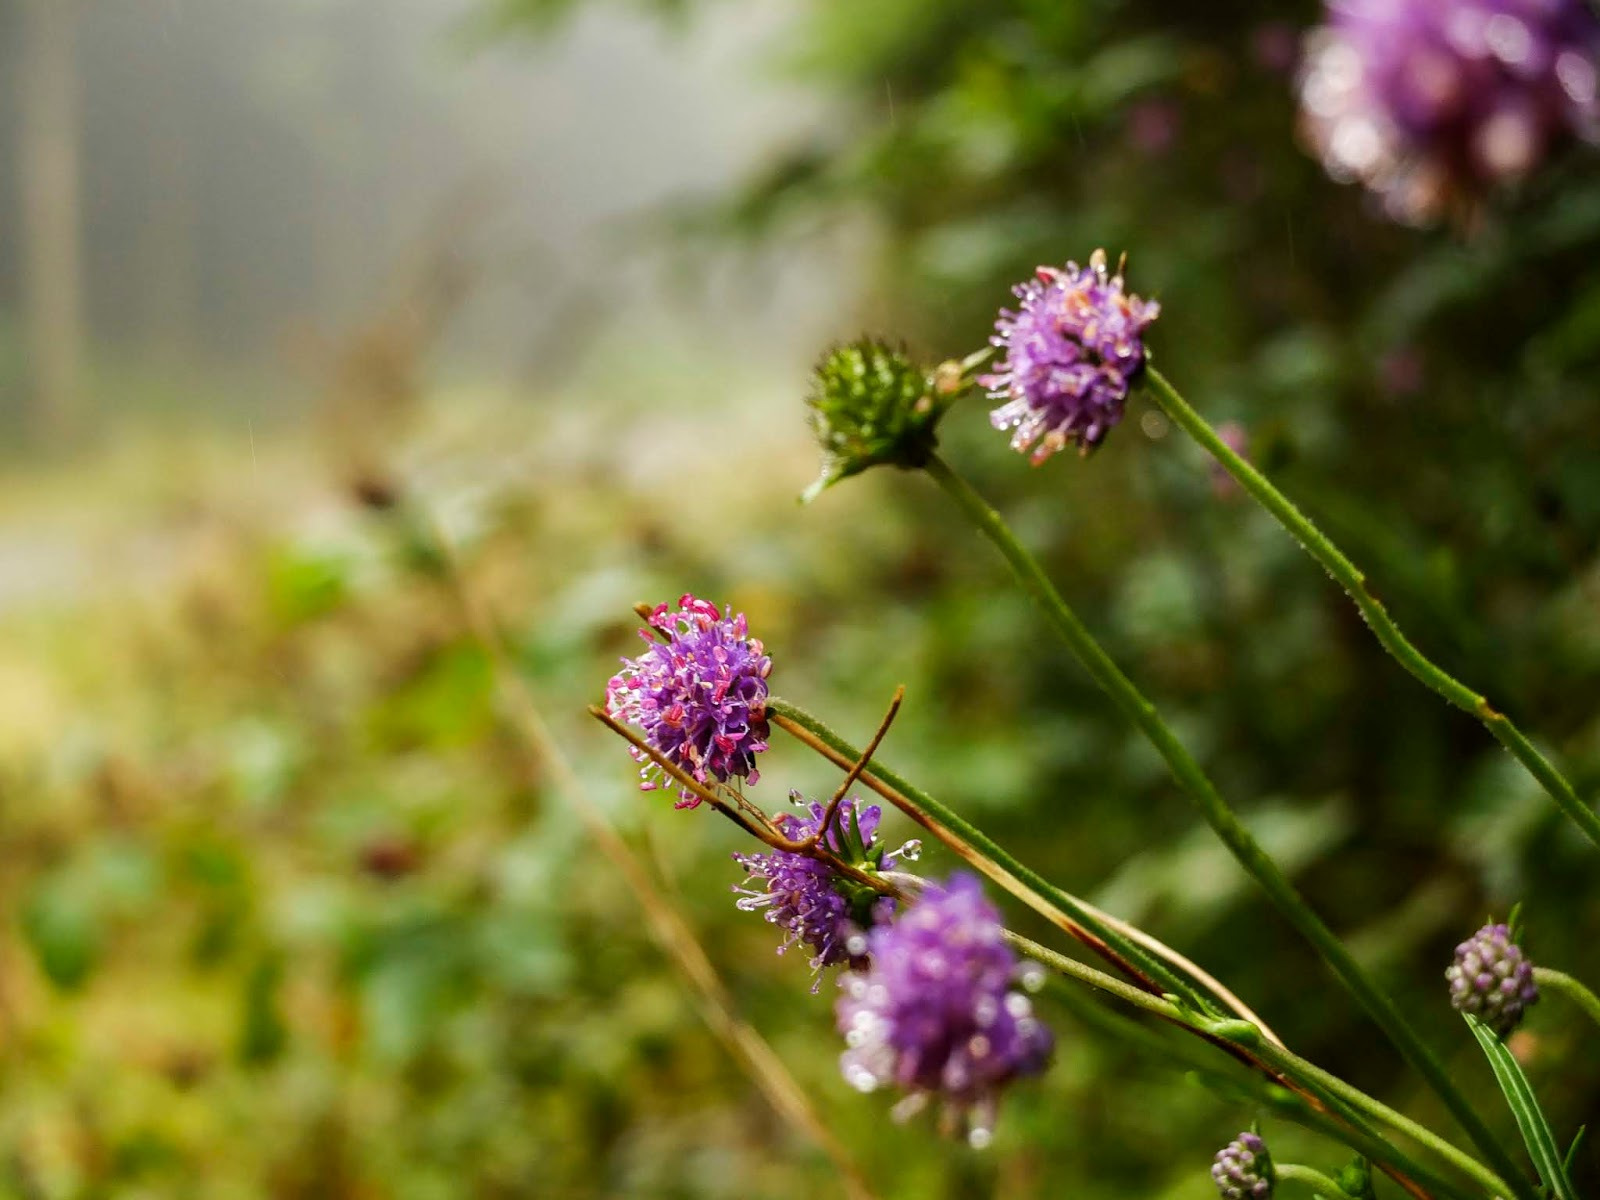 Some purple wild flowers hanging over the edge of an embankment in the forest.